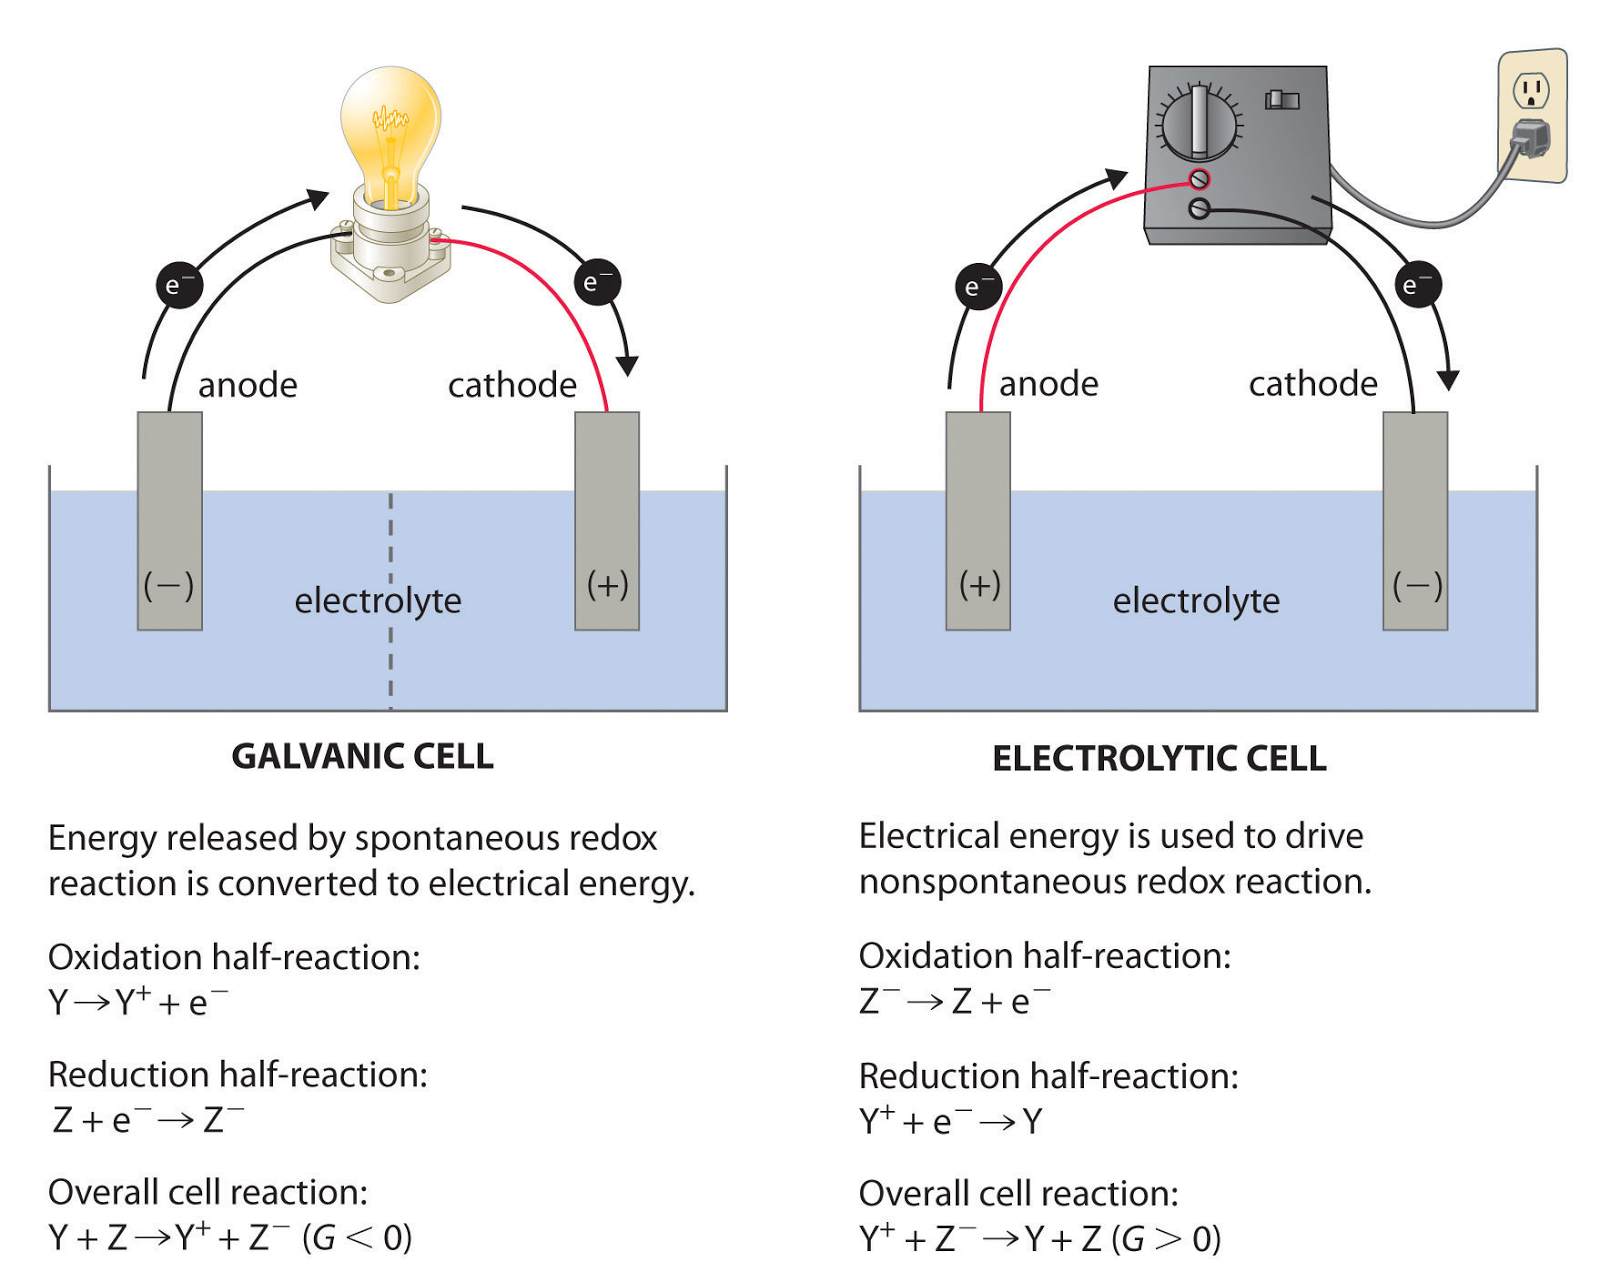 Chapter 11 Chemistry 101 Description Oxygen Molecule Orbitals Diagramjpg The Following Graphics Nicely Displays This Information While Highlighting Galvanic Cells Differences